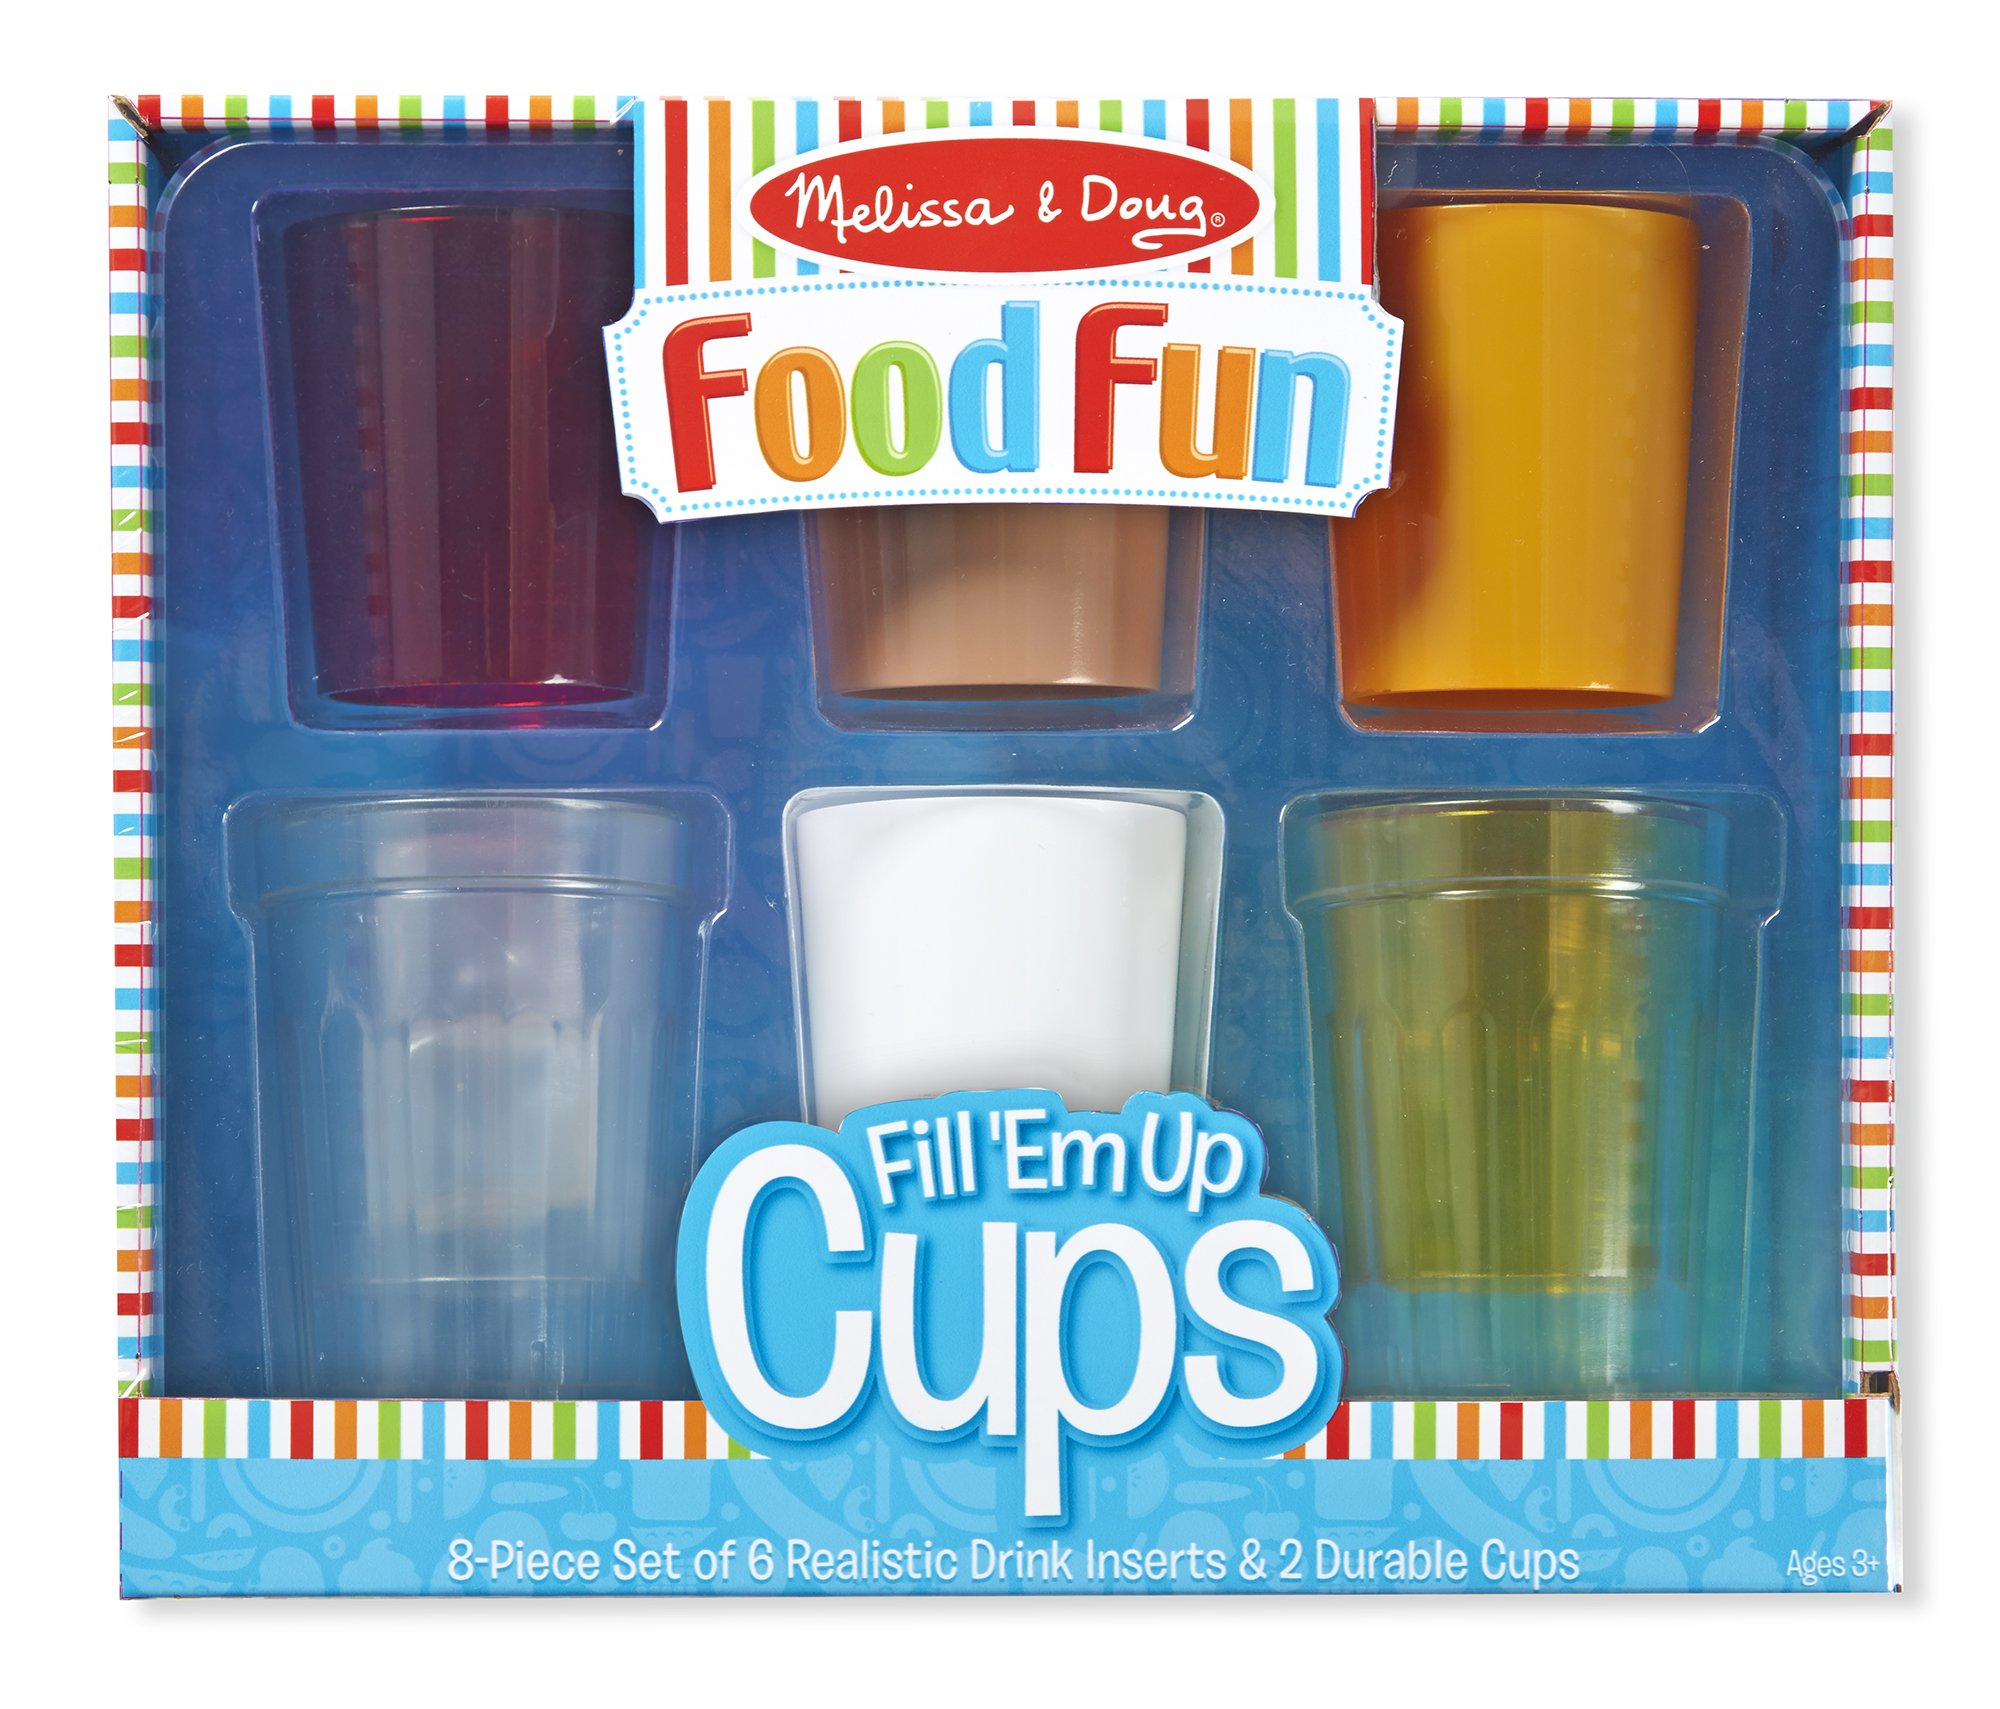 Melissa & Doug Create-A-Meal Food Fun - Fill 'Em Up Cups - Play Food and Kitchen Accessories Role Play Toy by Melissa & Doug